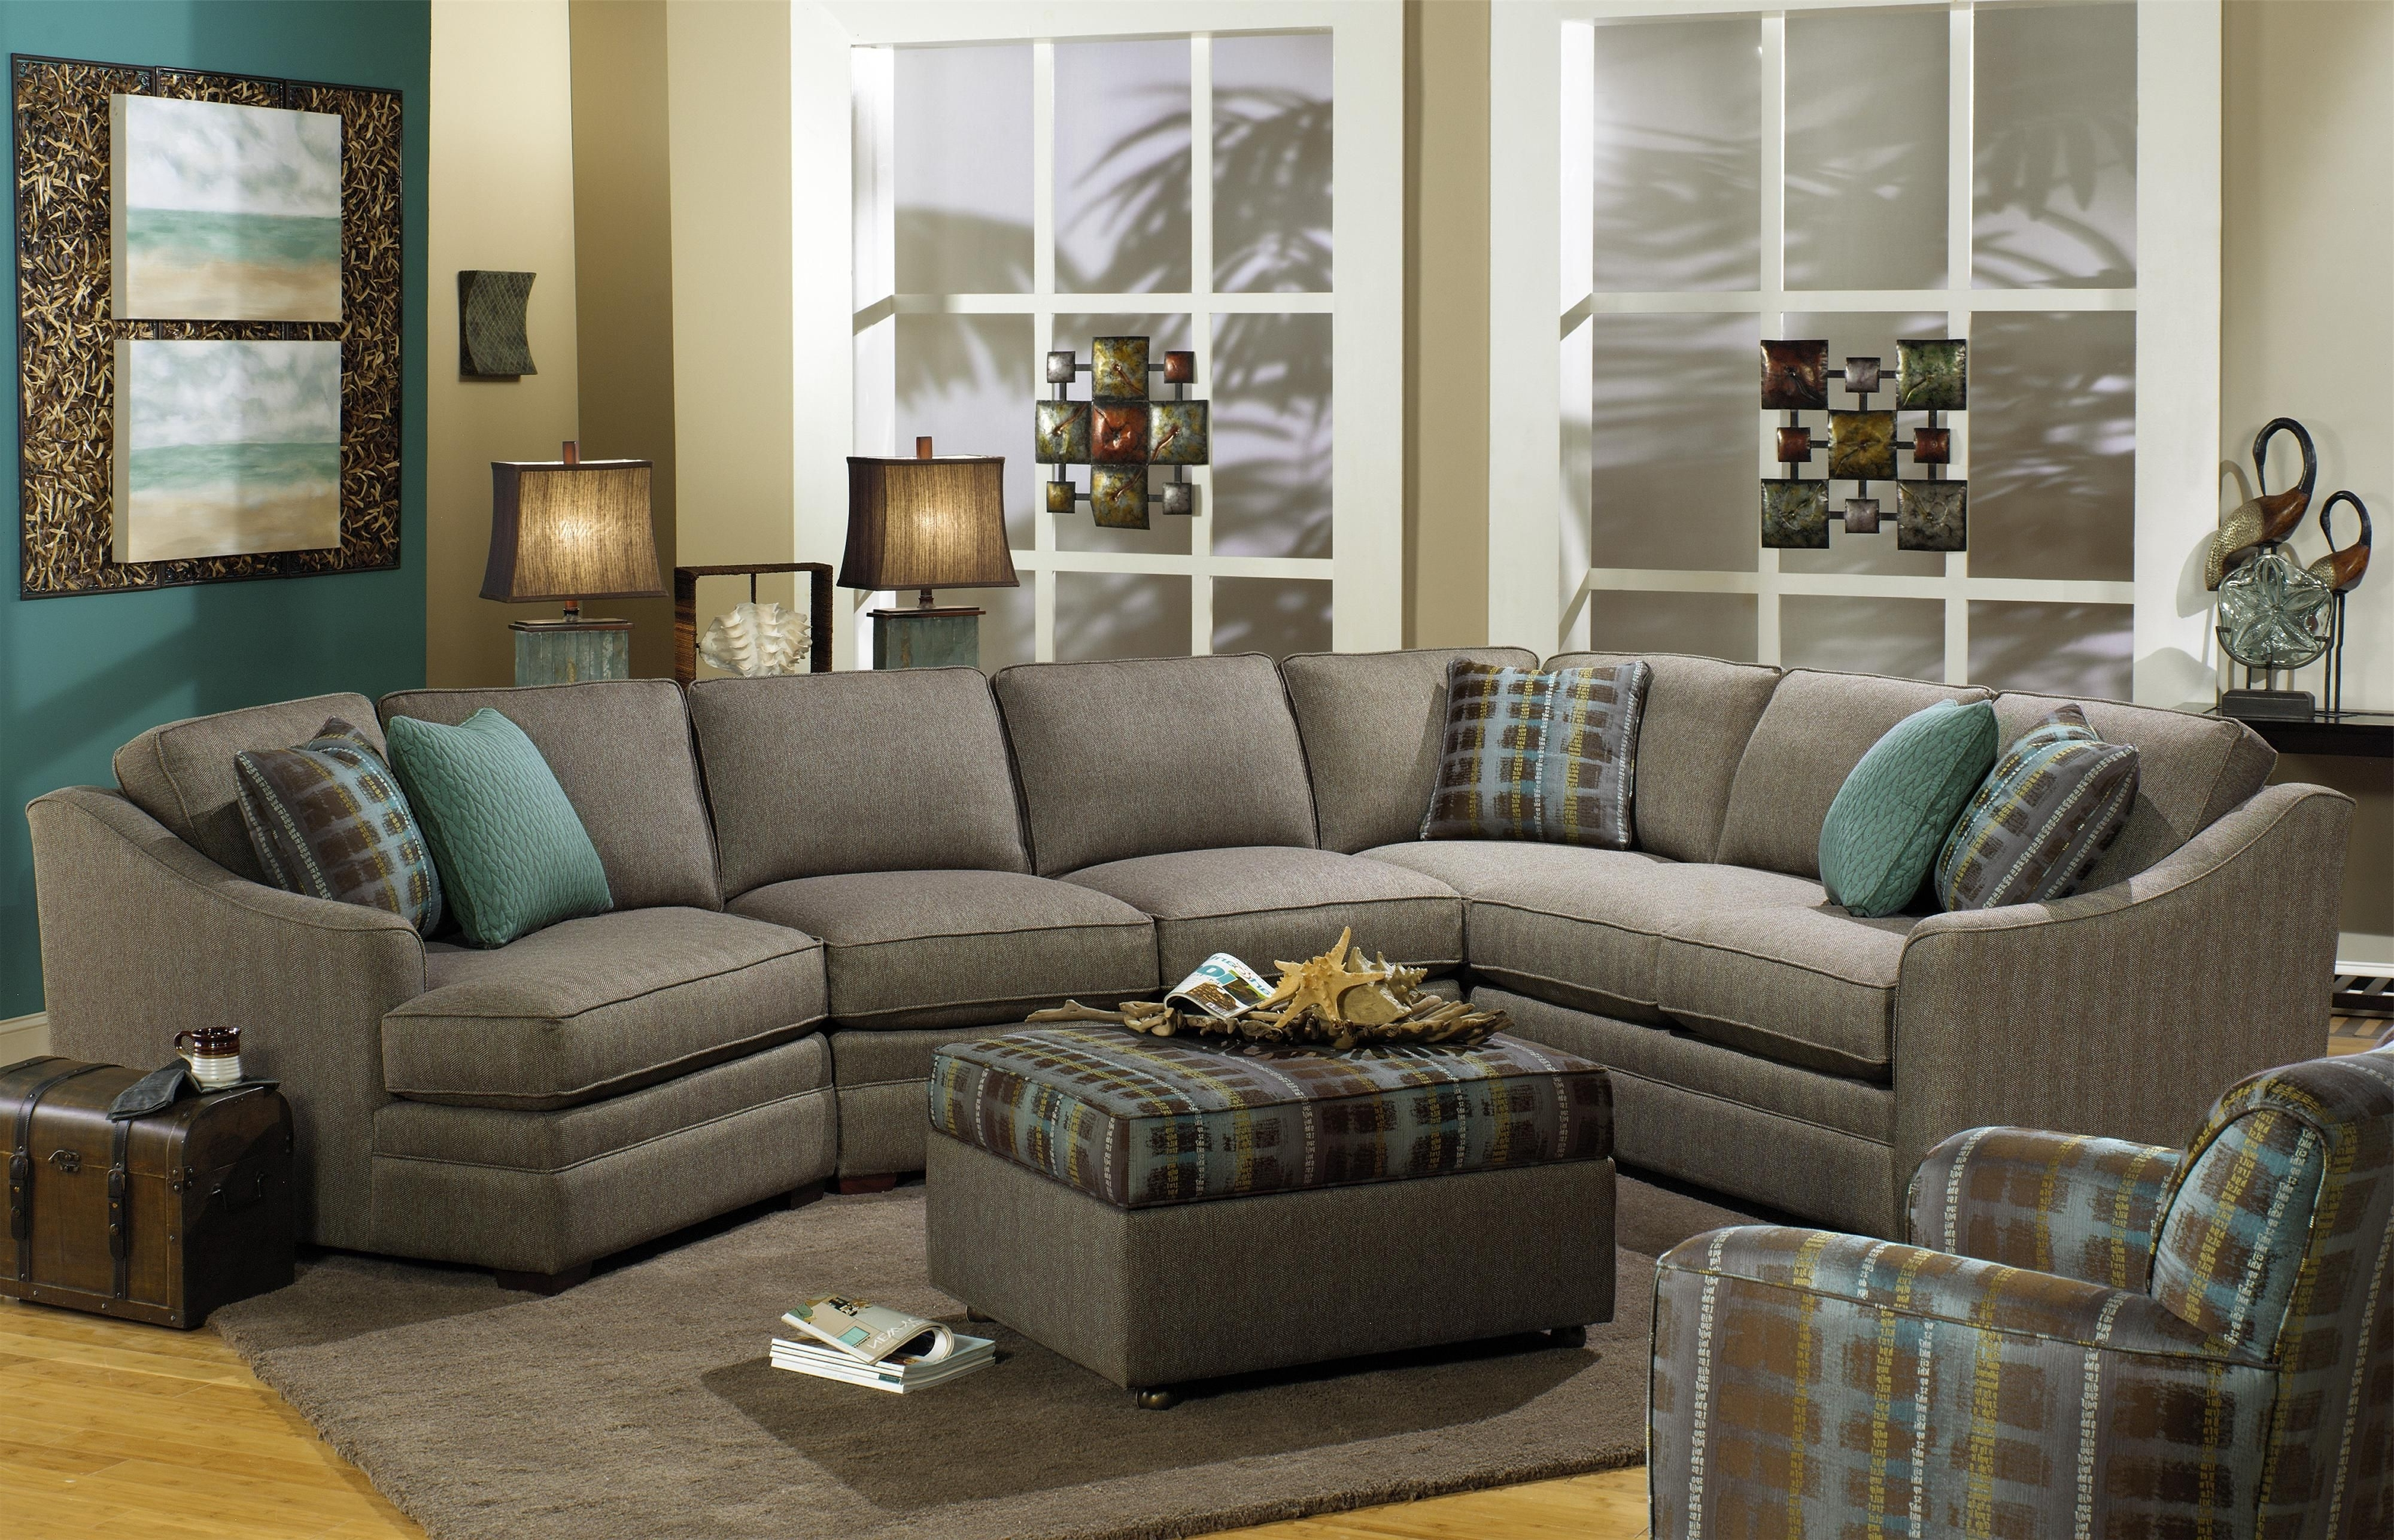 Fashionable Sectional Sofas At The Brick With Regard To F9 Custom Collection Customizable 3 Piece Sectional With Laf (View 11 of 15)